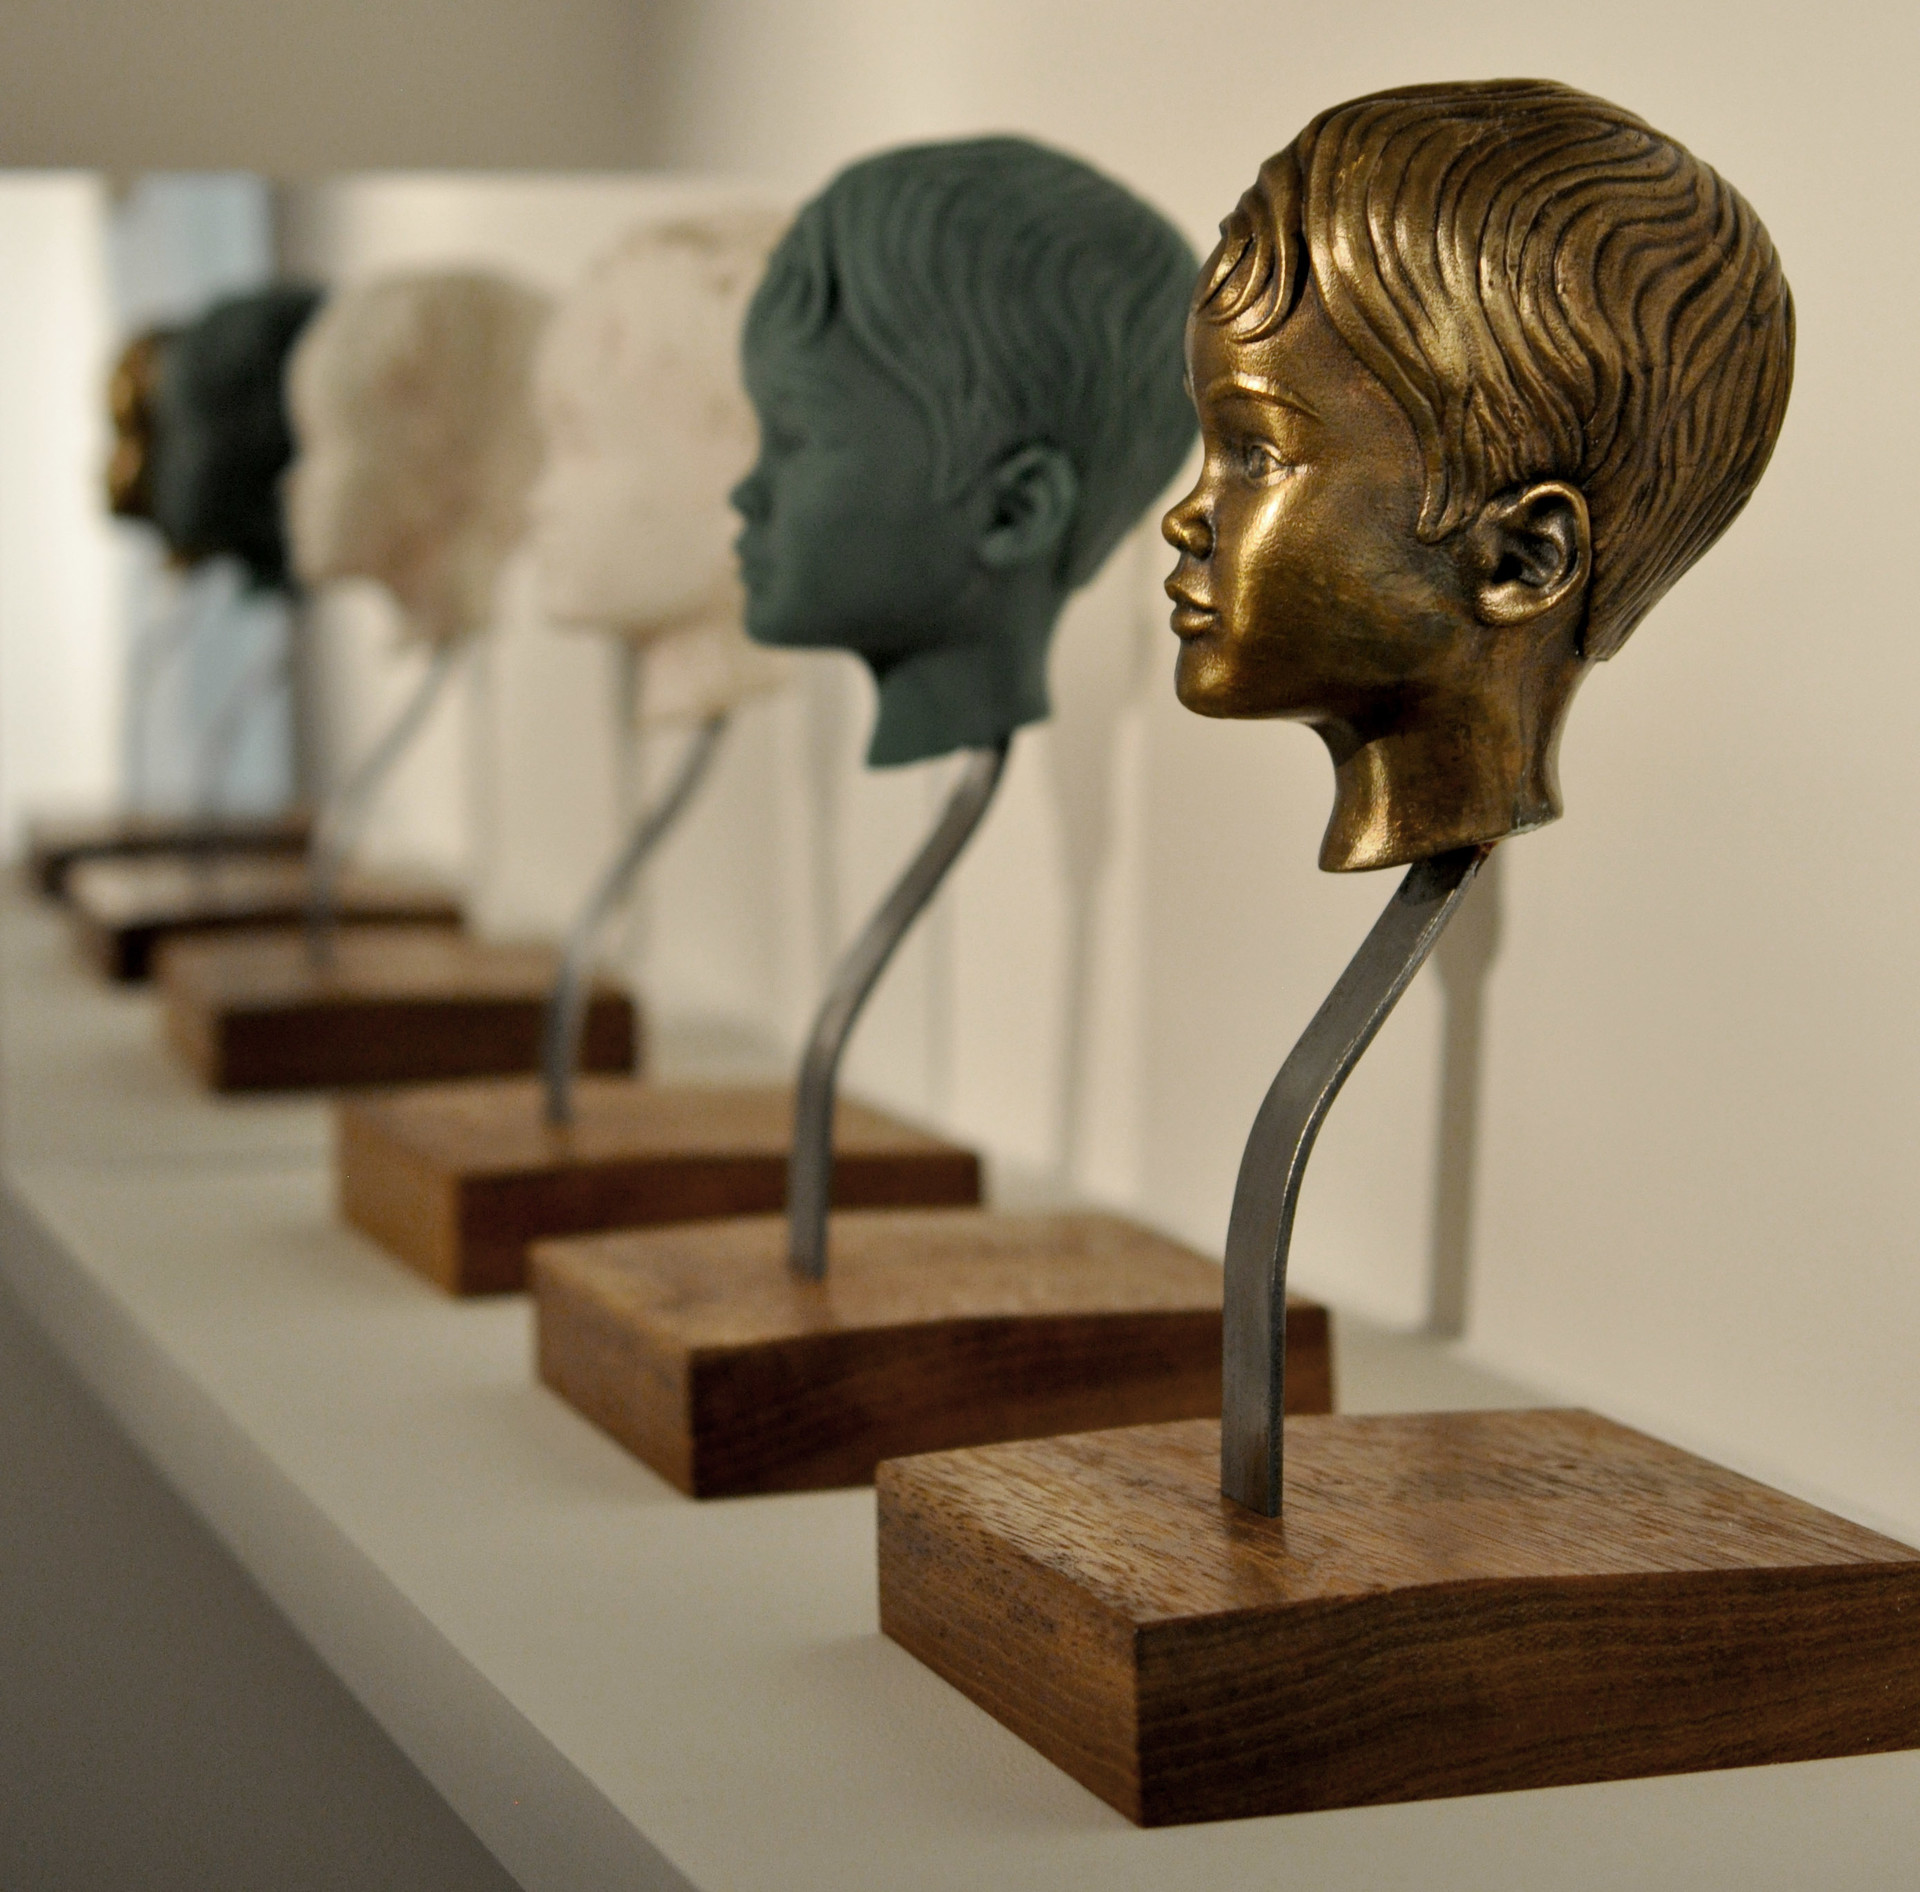 Bronze, wax and 3D printed variations of bust.